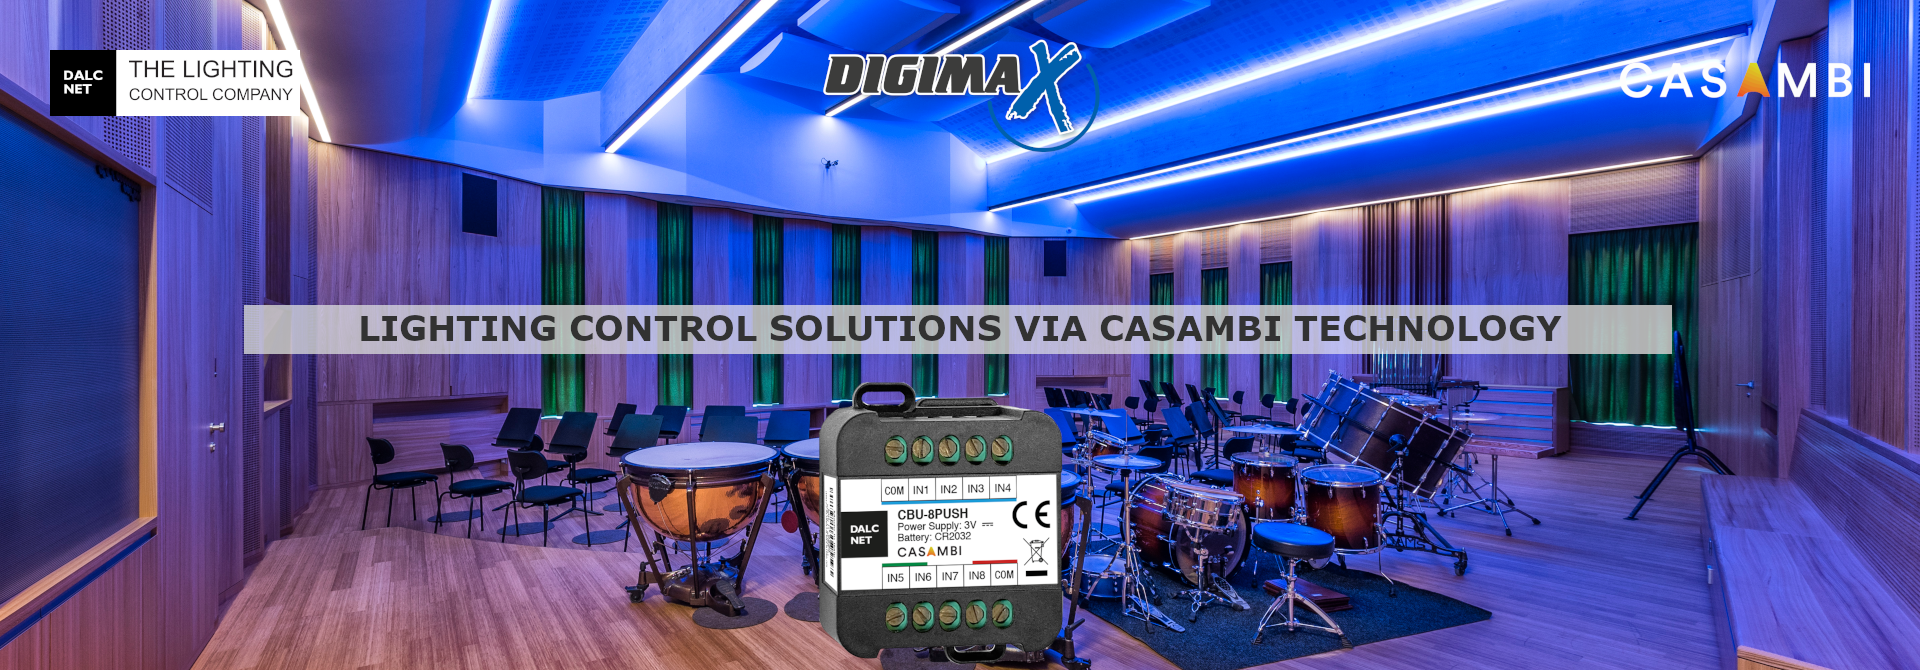 Dalcnet - CBU-8PUSH device for Casambi applications